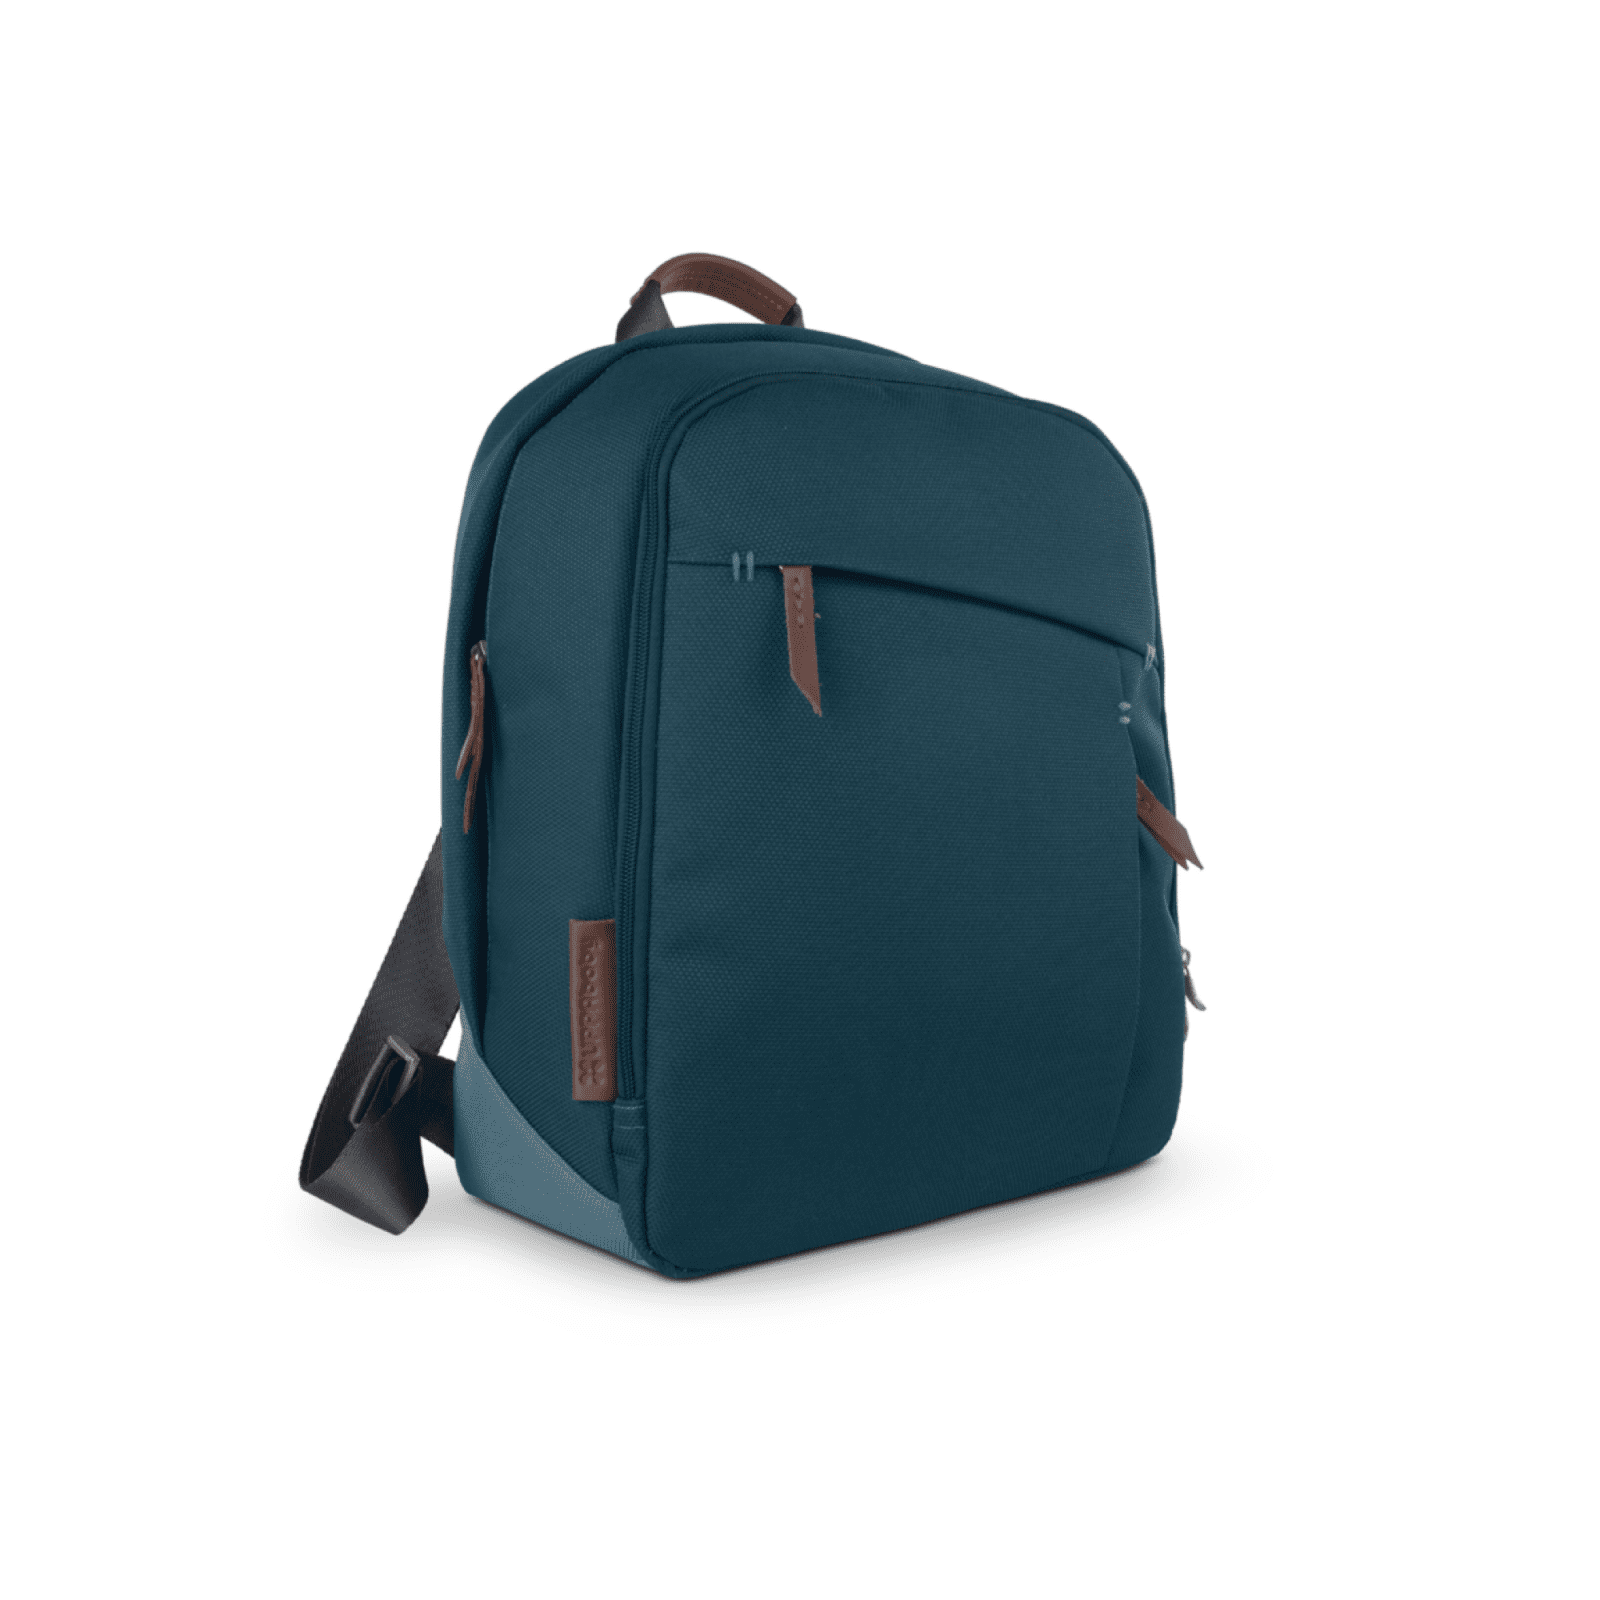 Changing Backpack: FINN product image